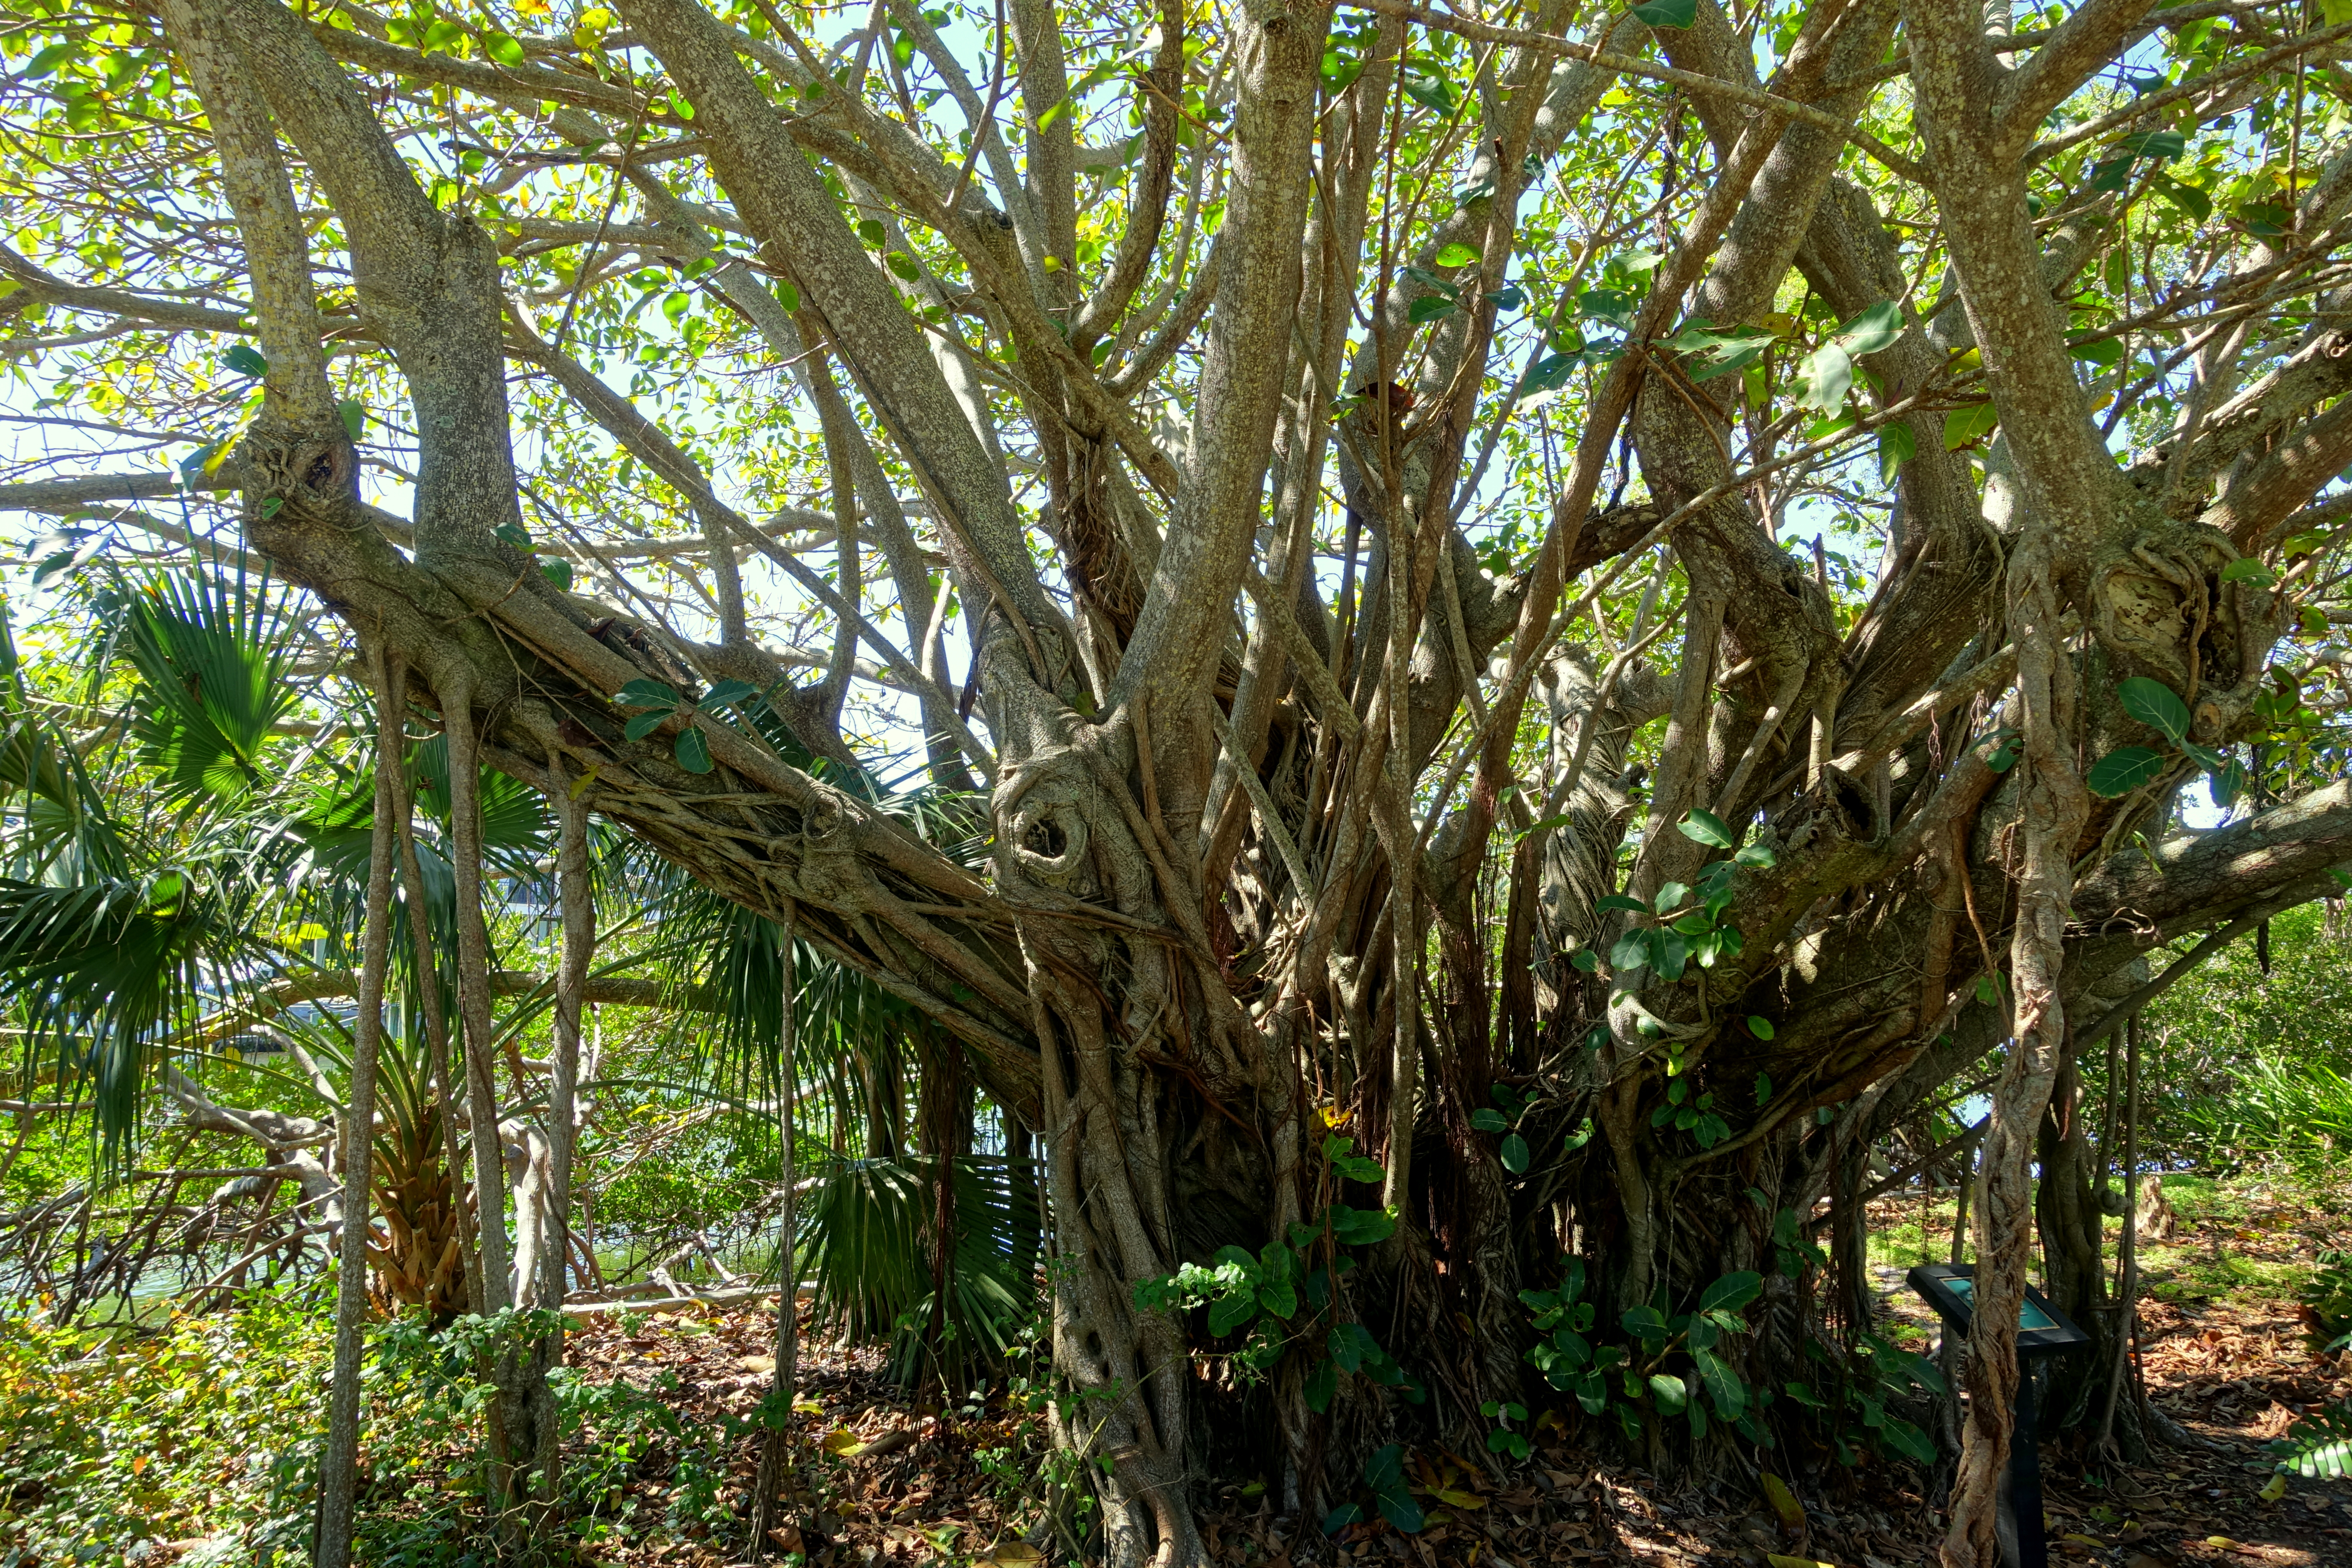 File:Ficus lutea, state champion tree - Marie Selby Botanical ...